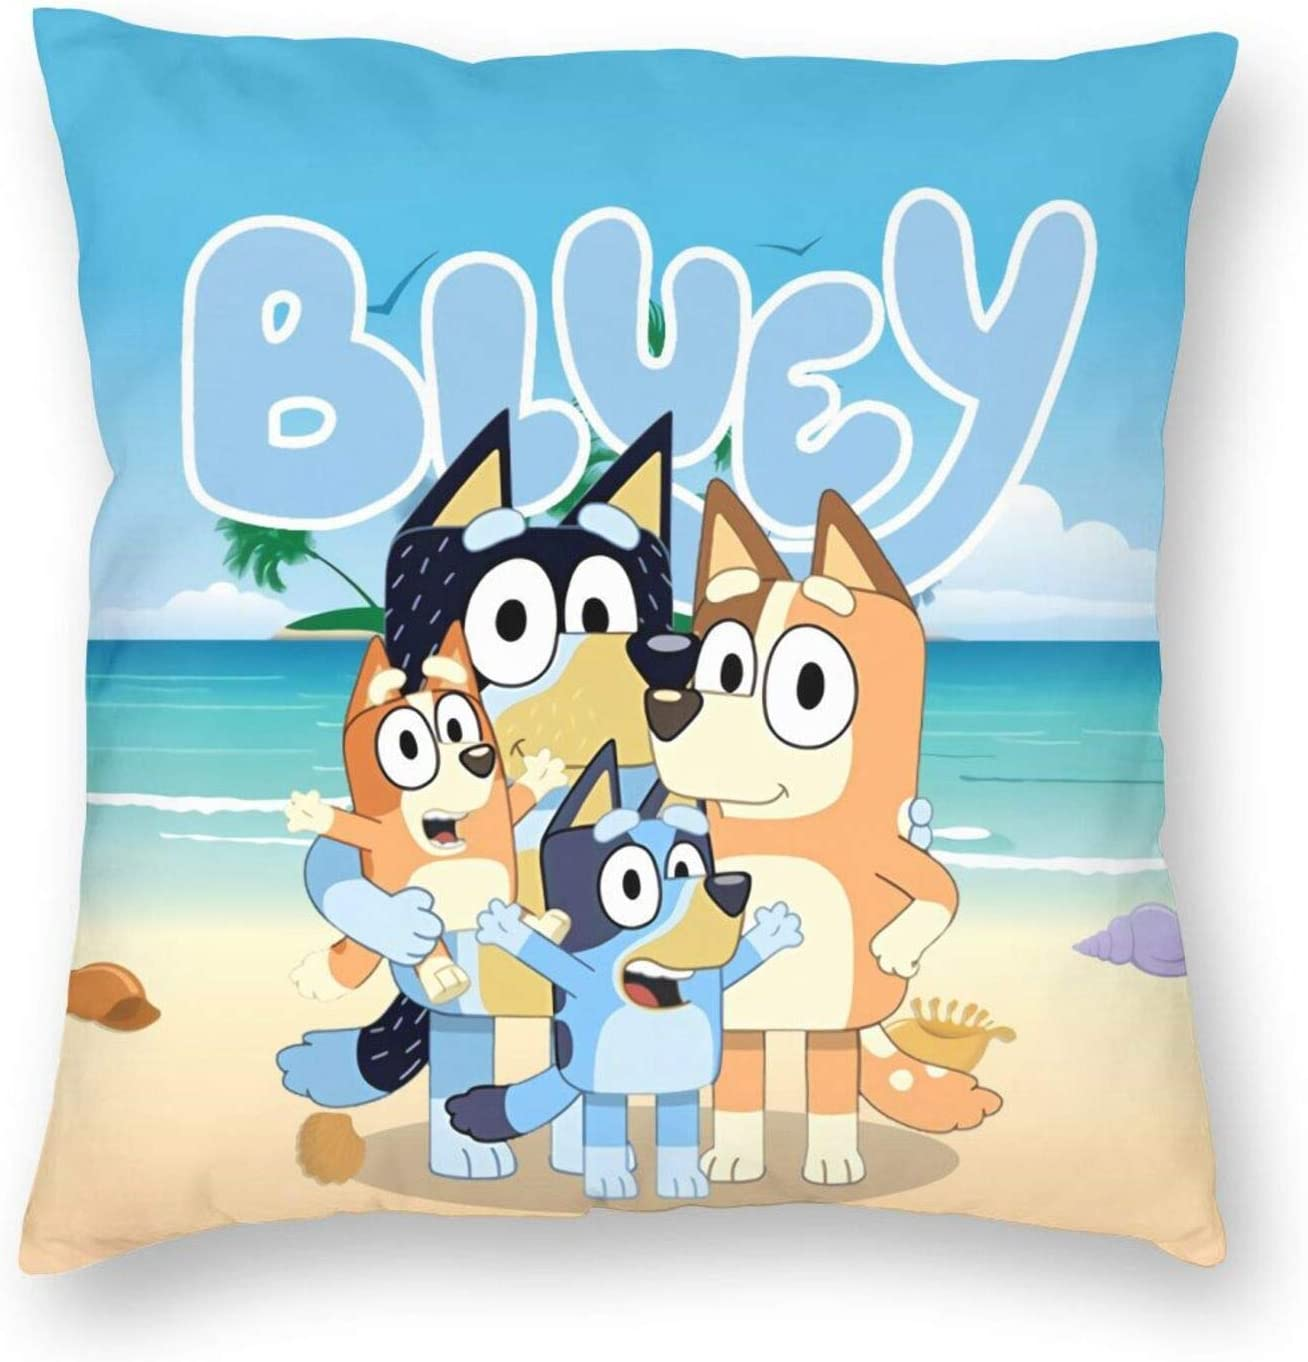 FT FENTENG Soft Velvet Sofa Bed Cushion Cases for Bedbugs Hypoallergenic, Blue-Y Cartoon Blue Heeler Dog Farmhouse Home Decorative Square Pillowcases, 16x16 Inch